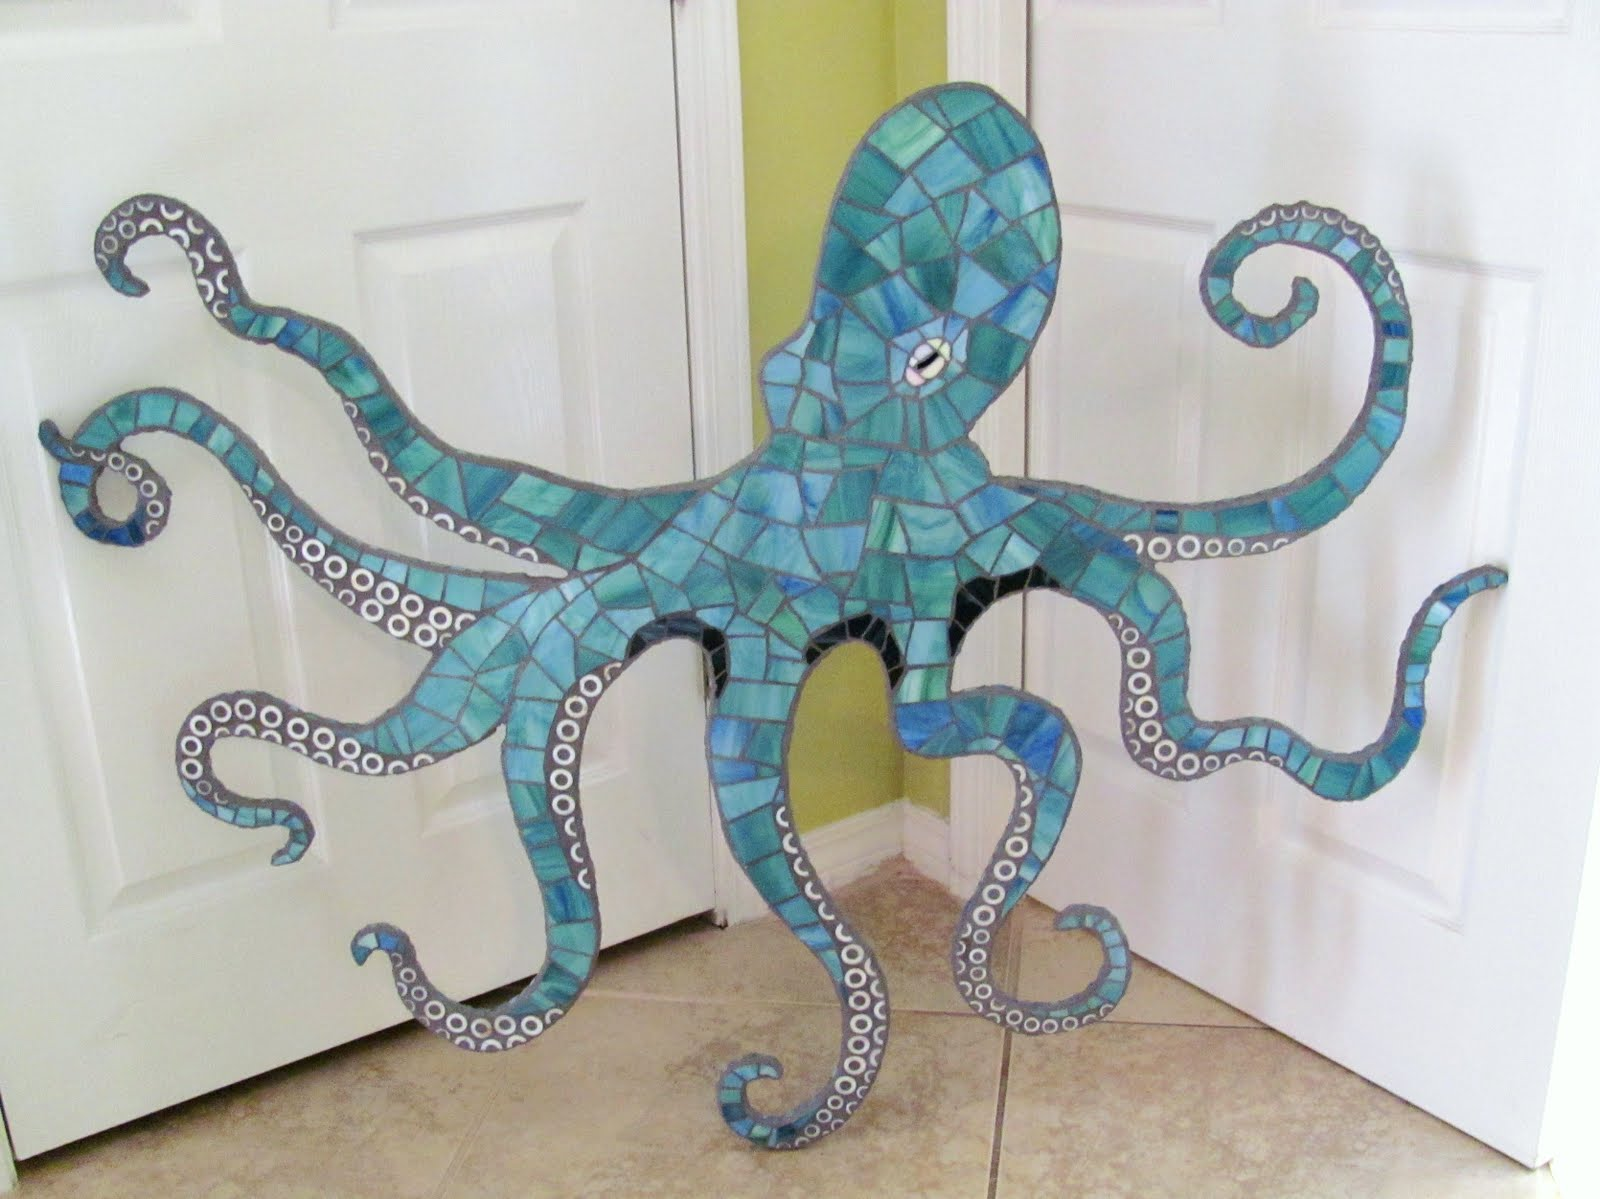 Octopus Wall Art - large 4 ft stained glass mosaic octopus ...